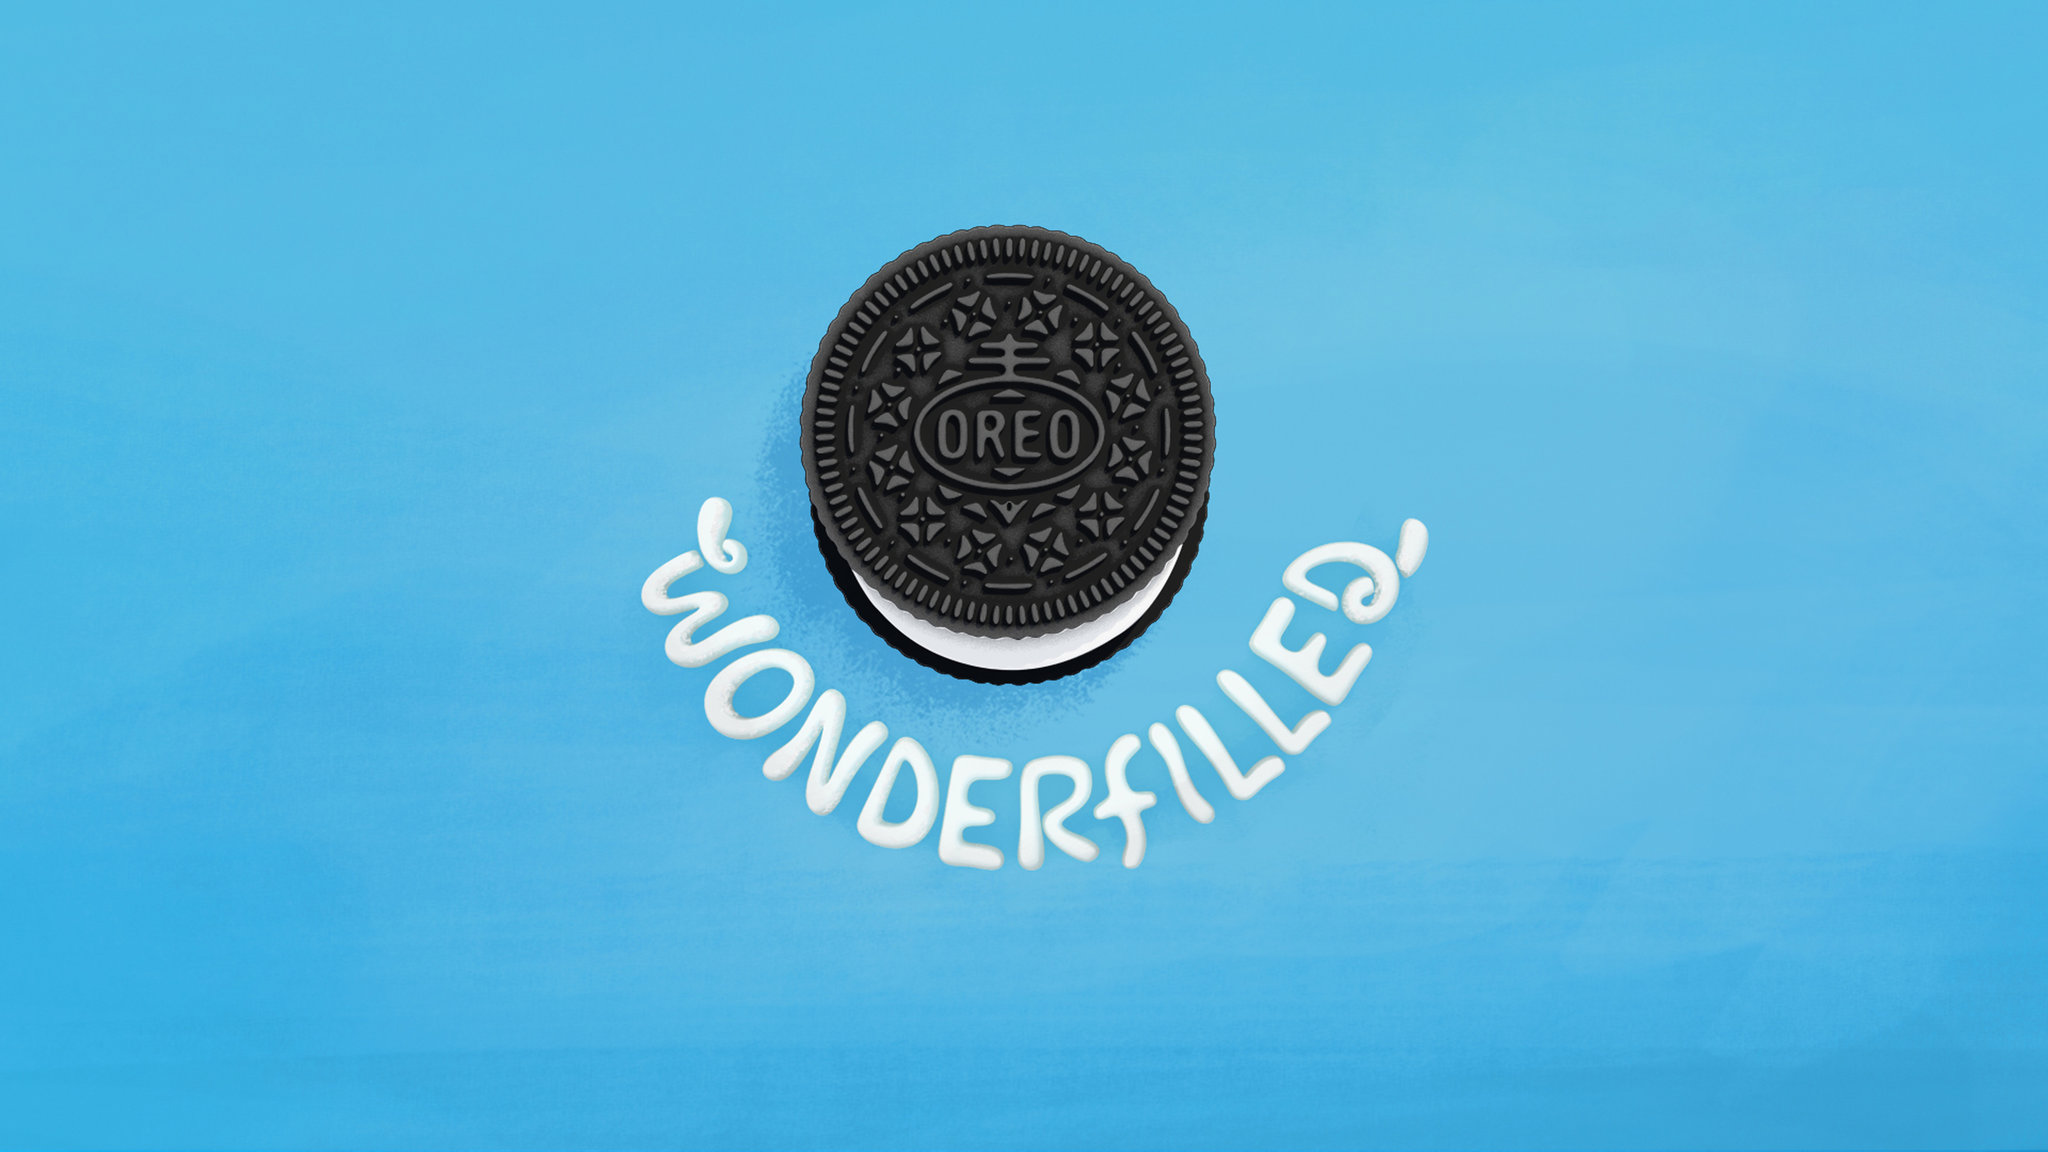 oreo ads  'PLAY WITH OREO'S' AMAZING ADS DESIGN oreo featured